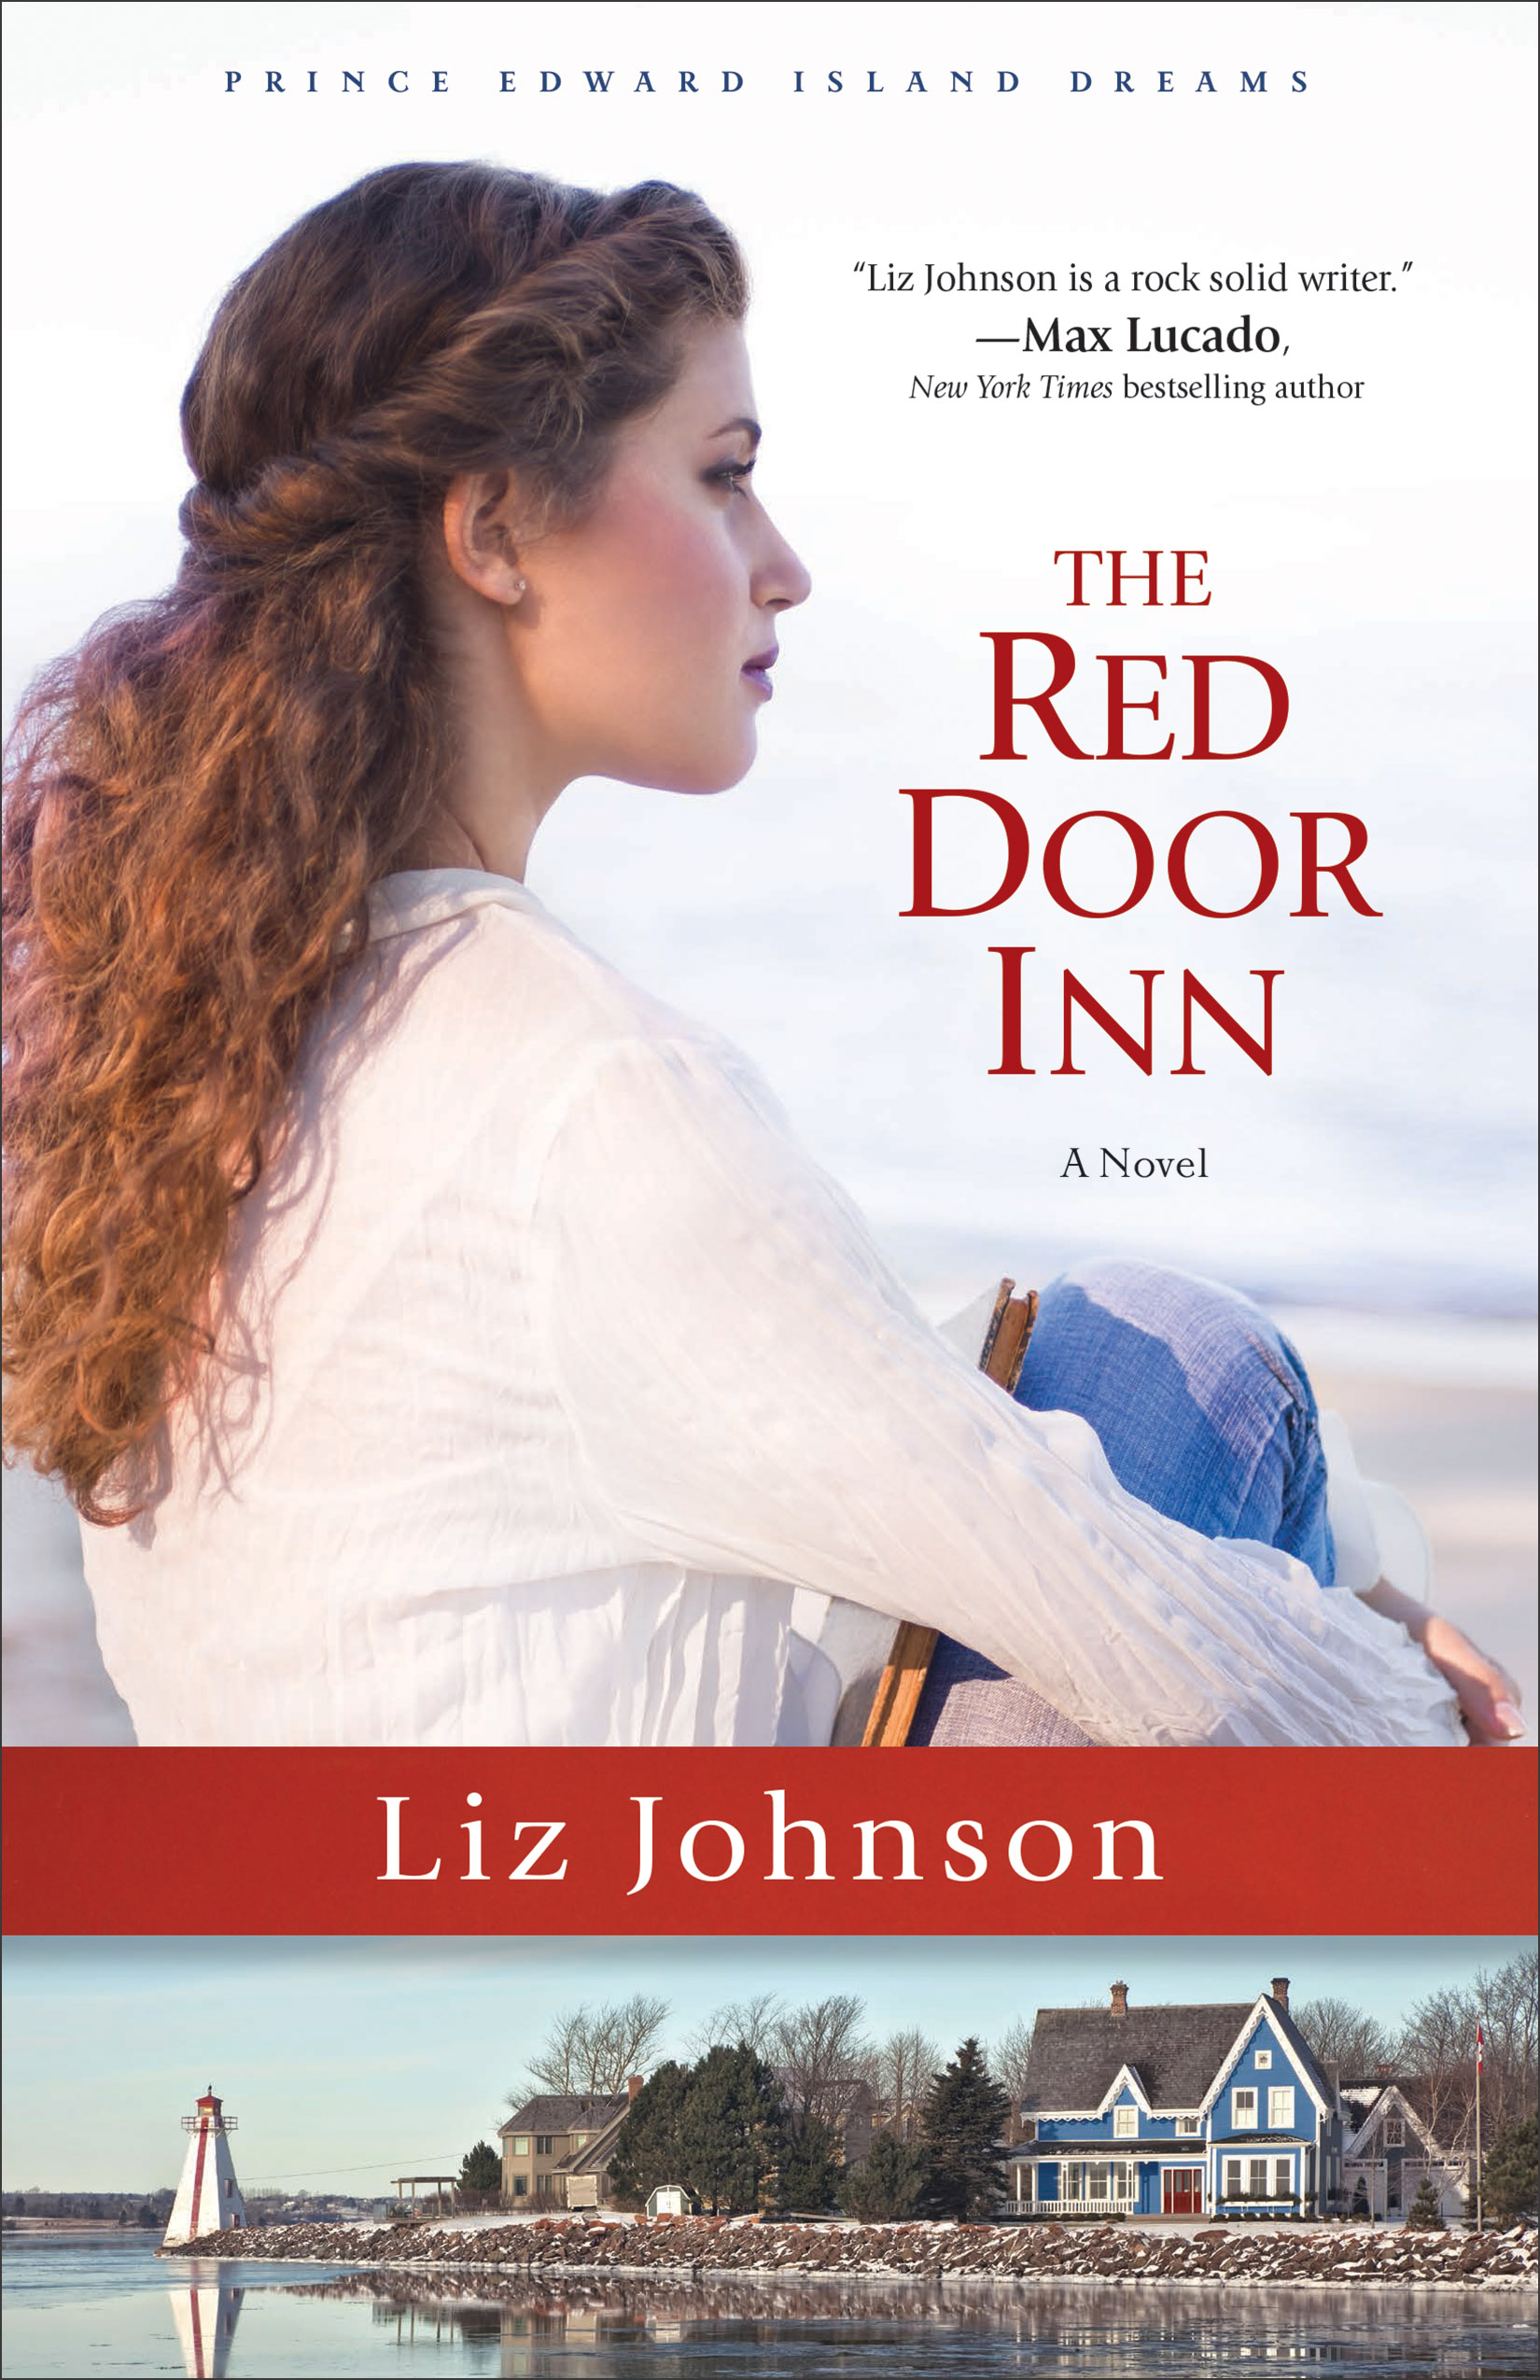 The Red Door Inn-Book Cover